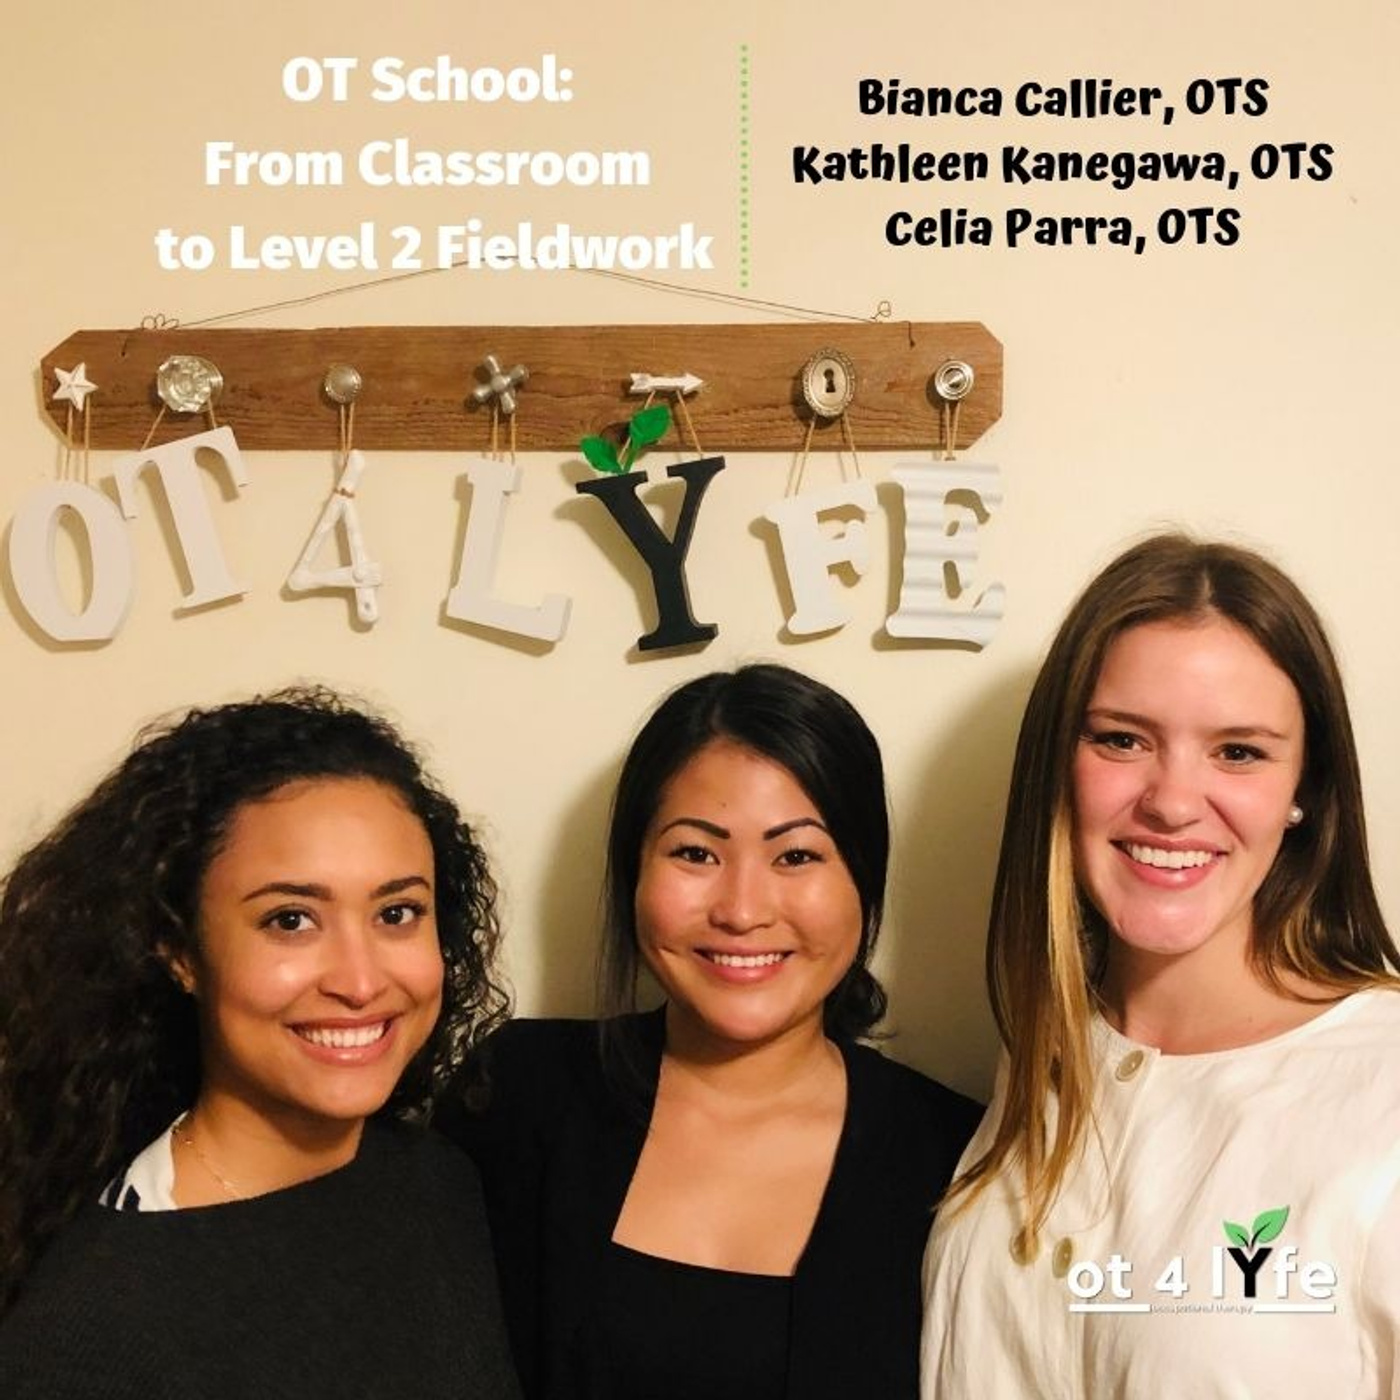 OT School: From Classroom to Level 2 Fieldwork